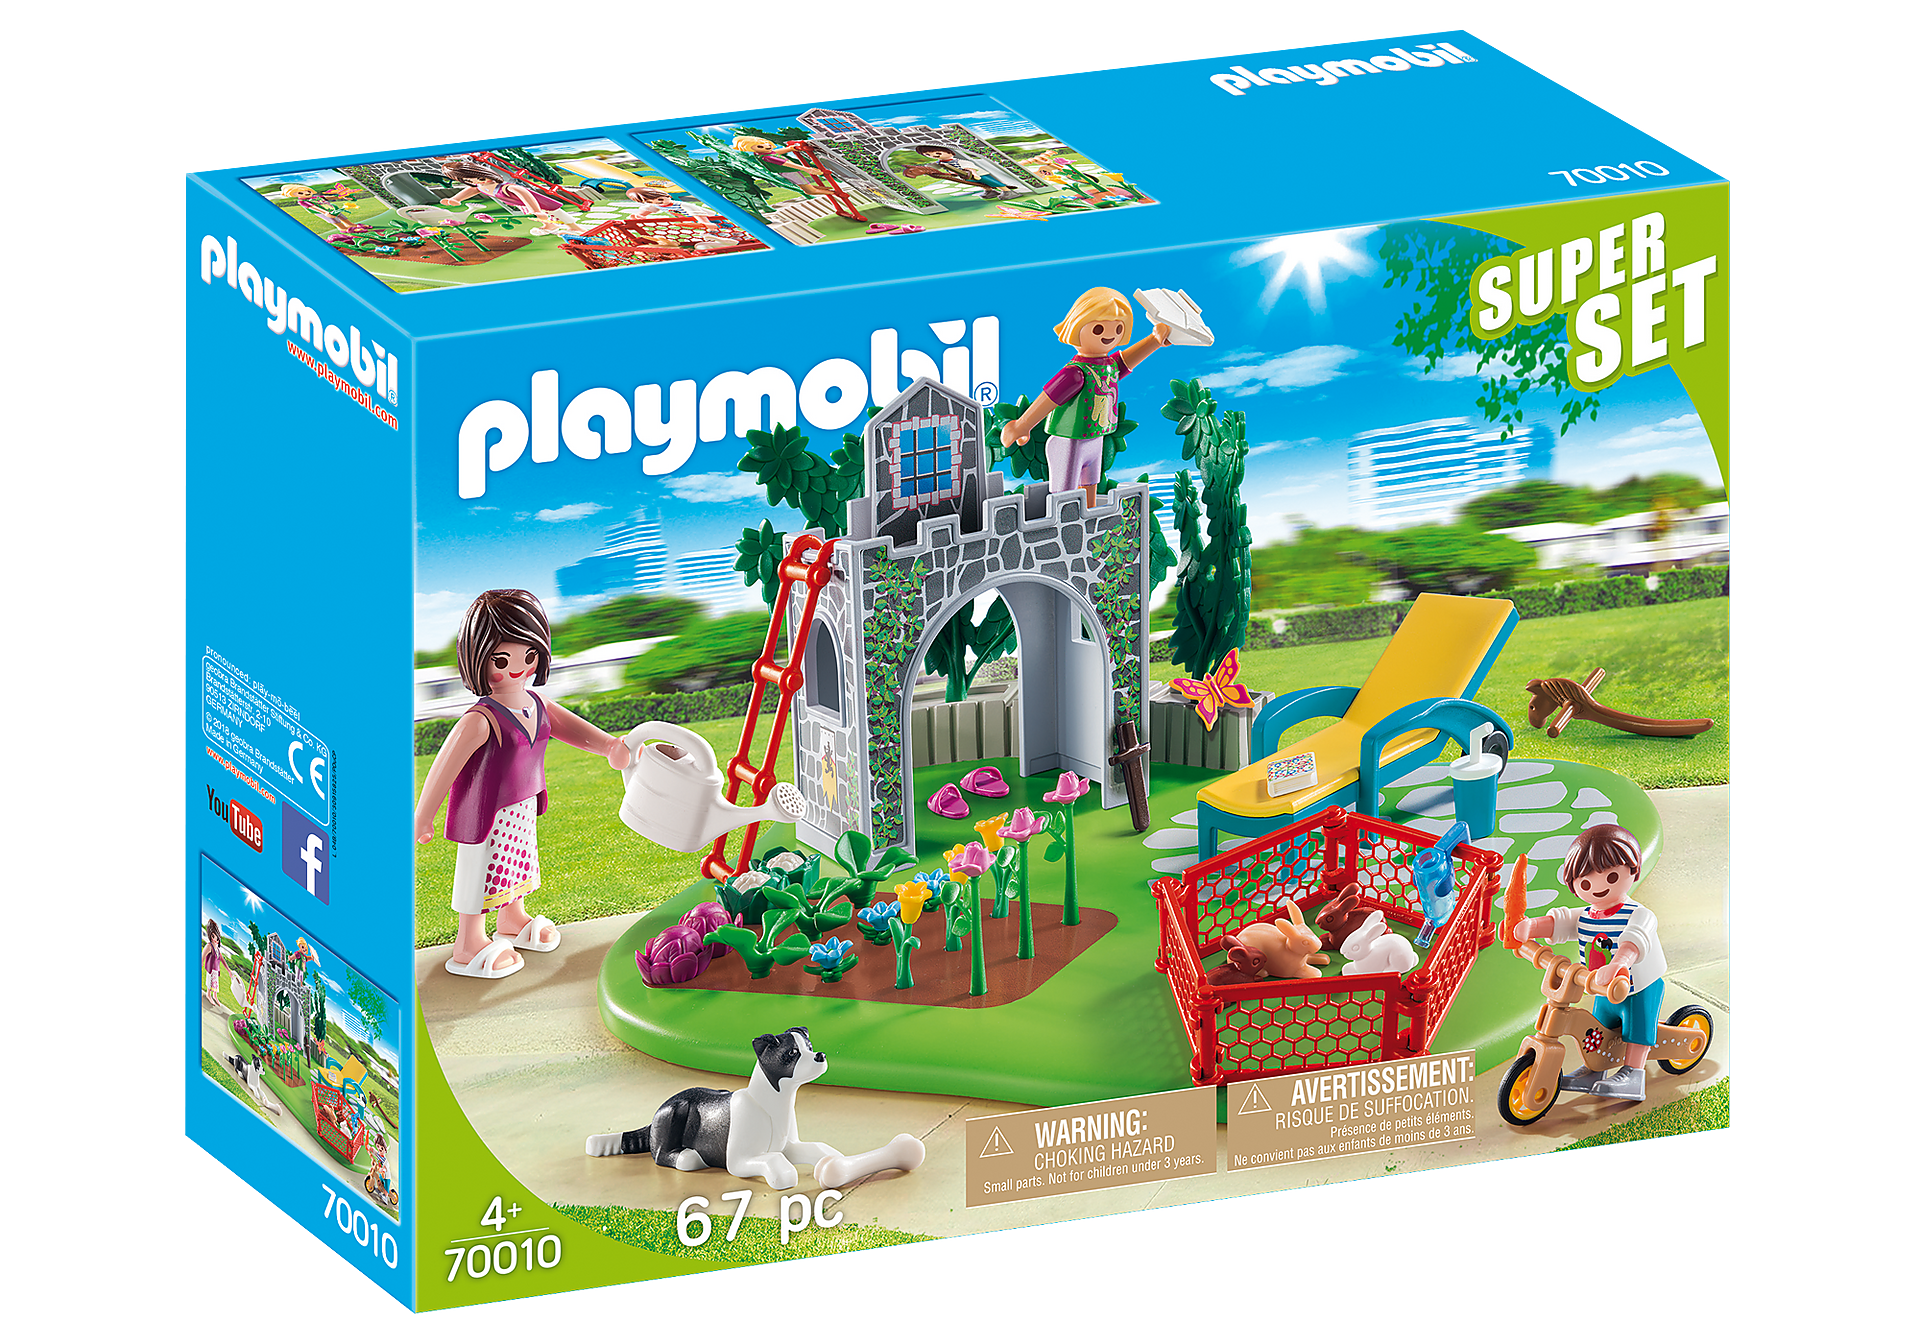 http://media.playmobil.com/i/playmobil/70010_product_box_front/SuperSet Familietuin